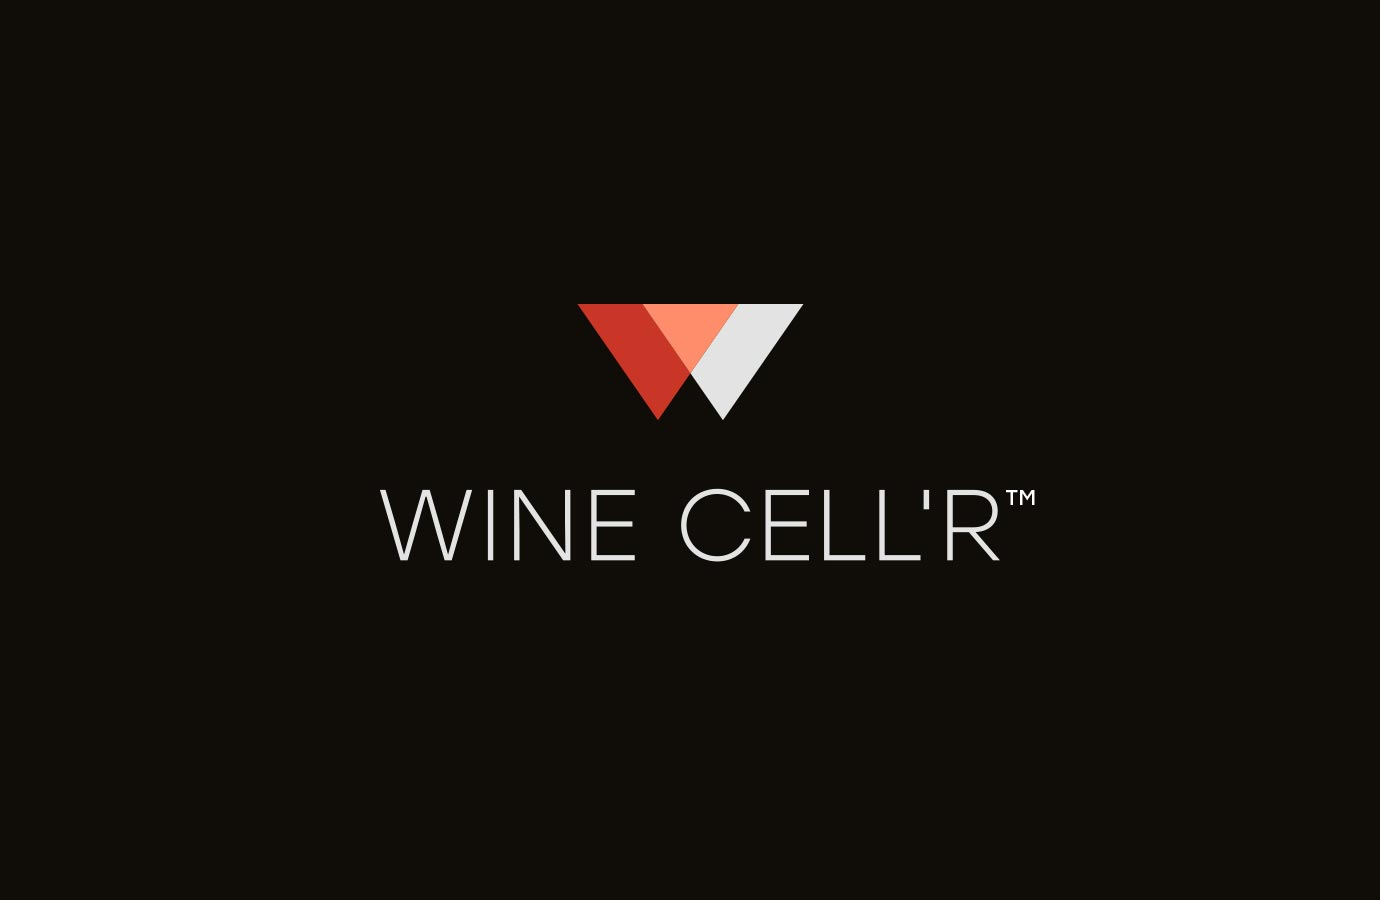 Identité visuelle Wine Cell'r